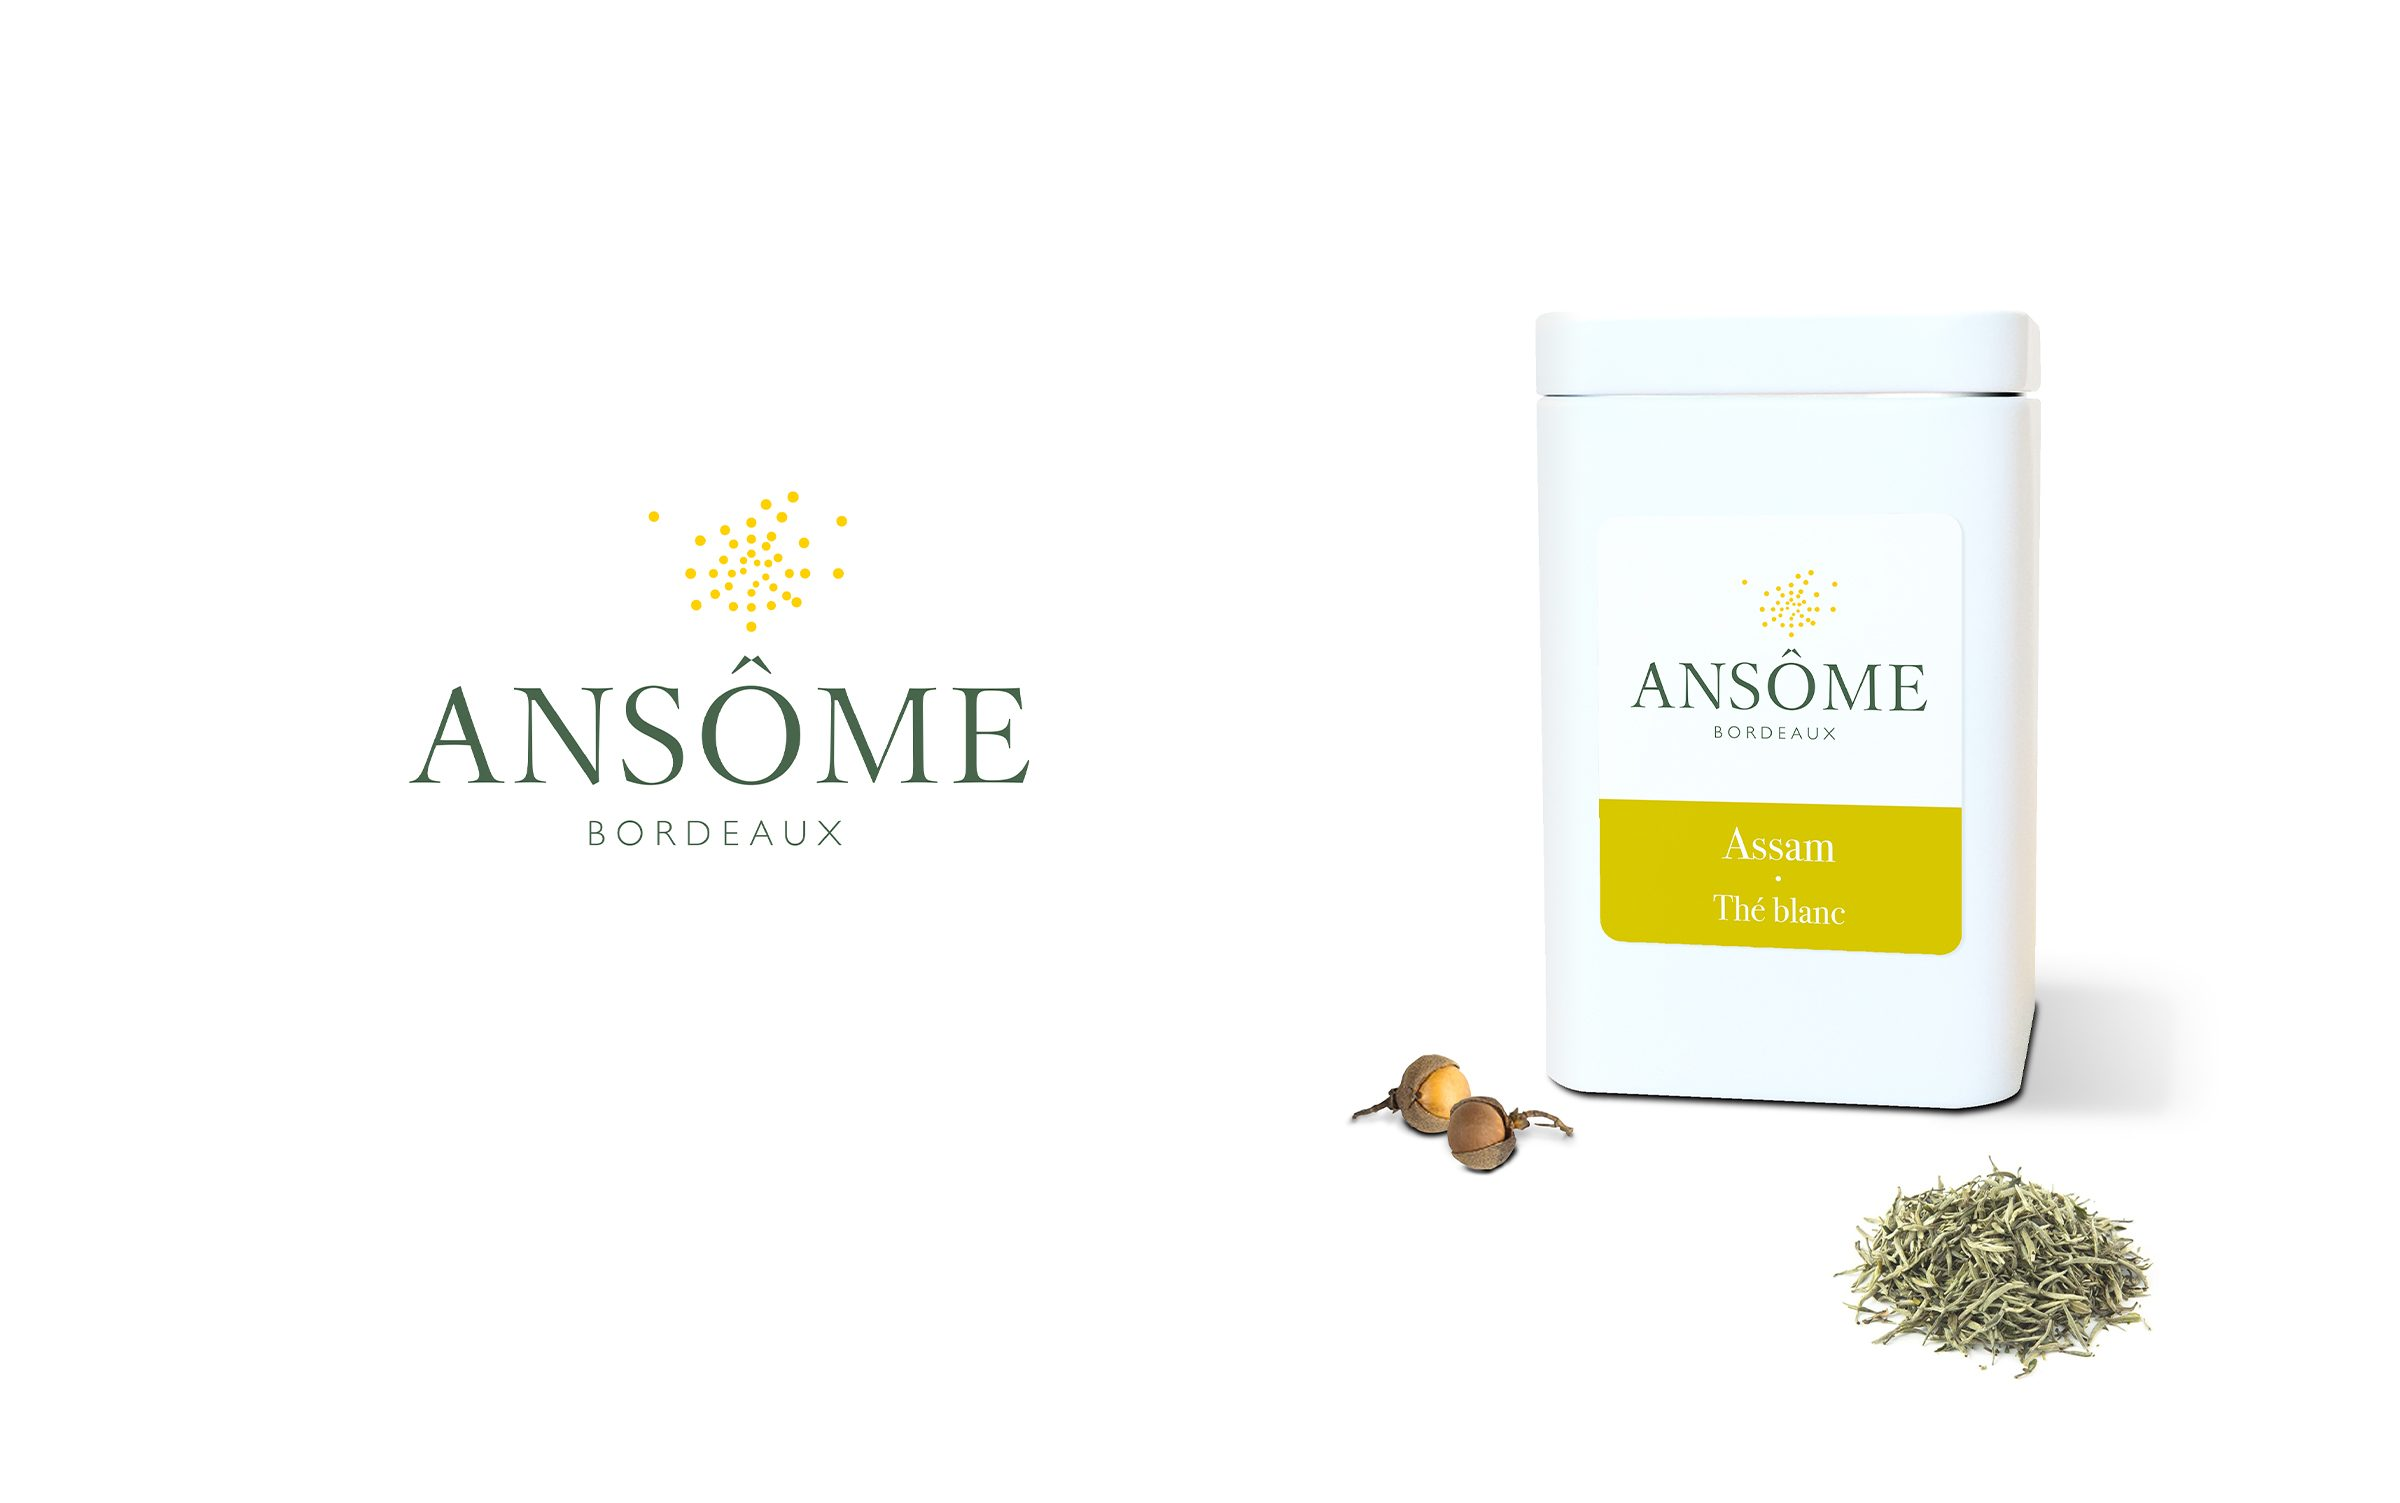 Ansome01